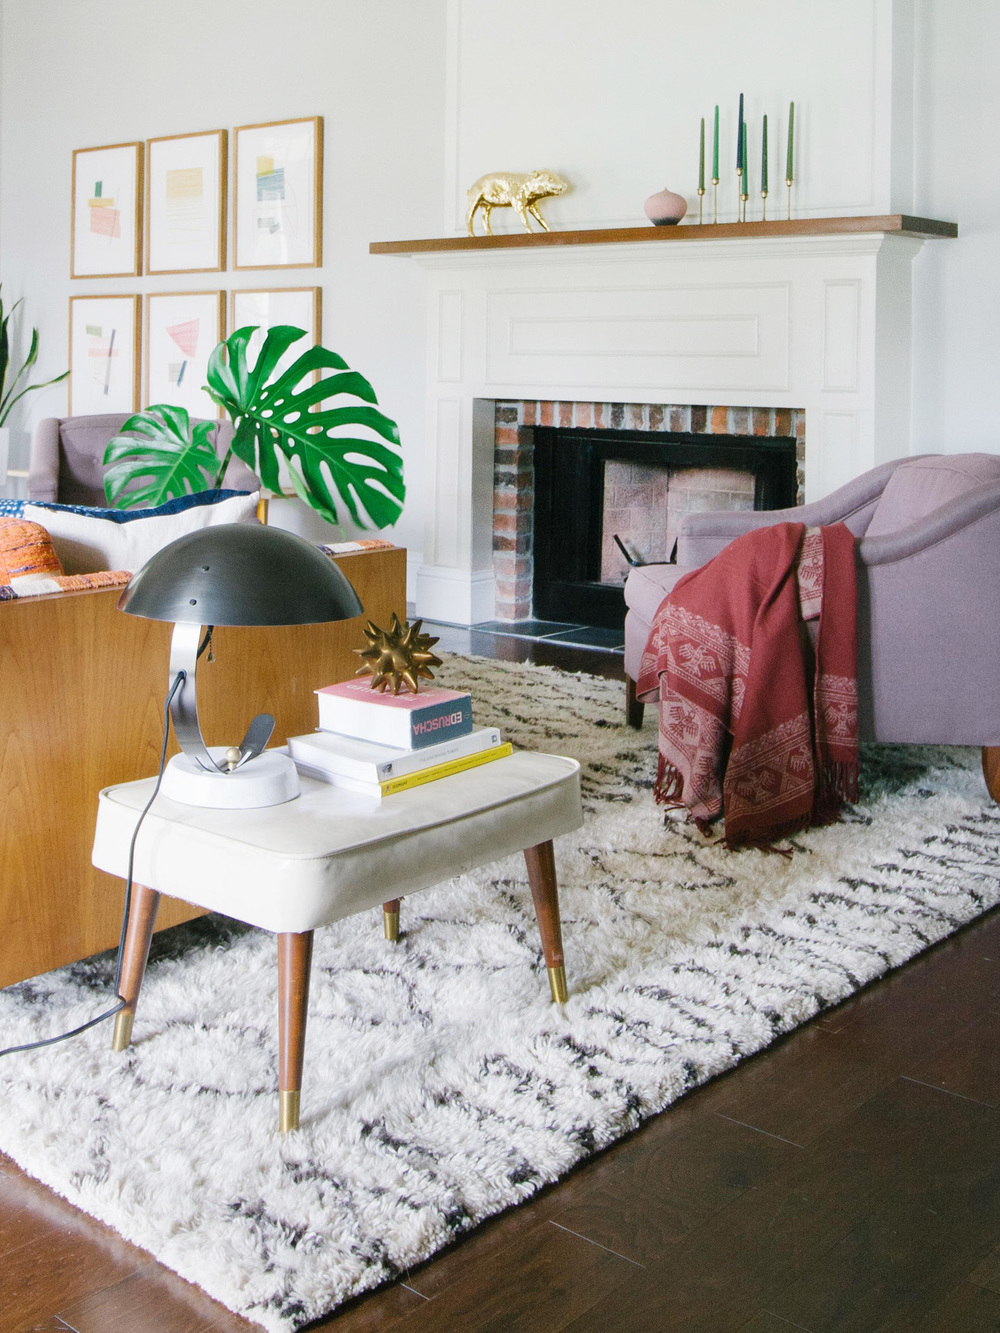 5 TIPS FOR CREATING A COZY LIVING ROOM @DABITO